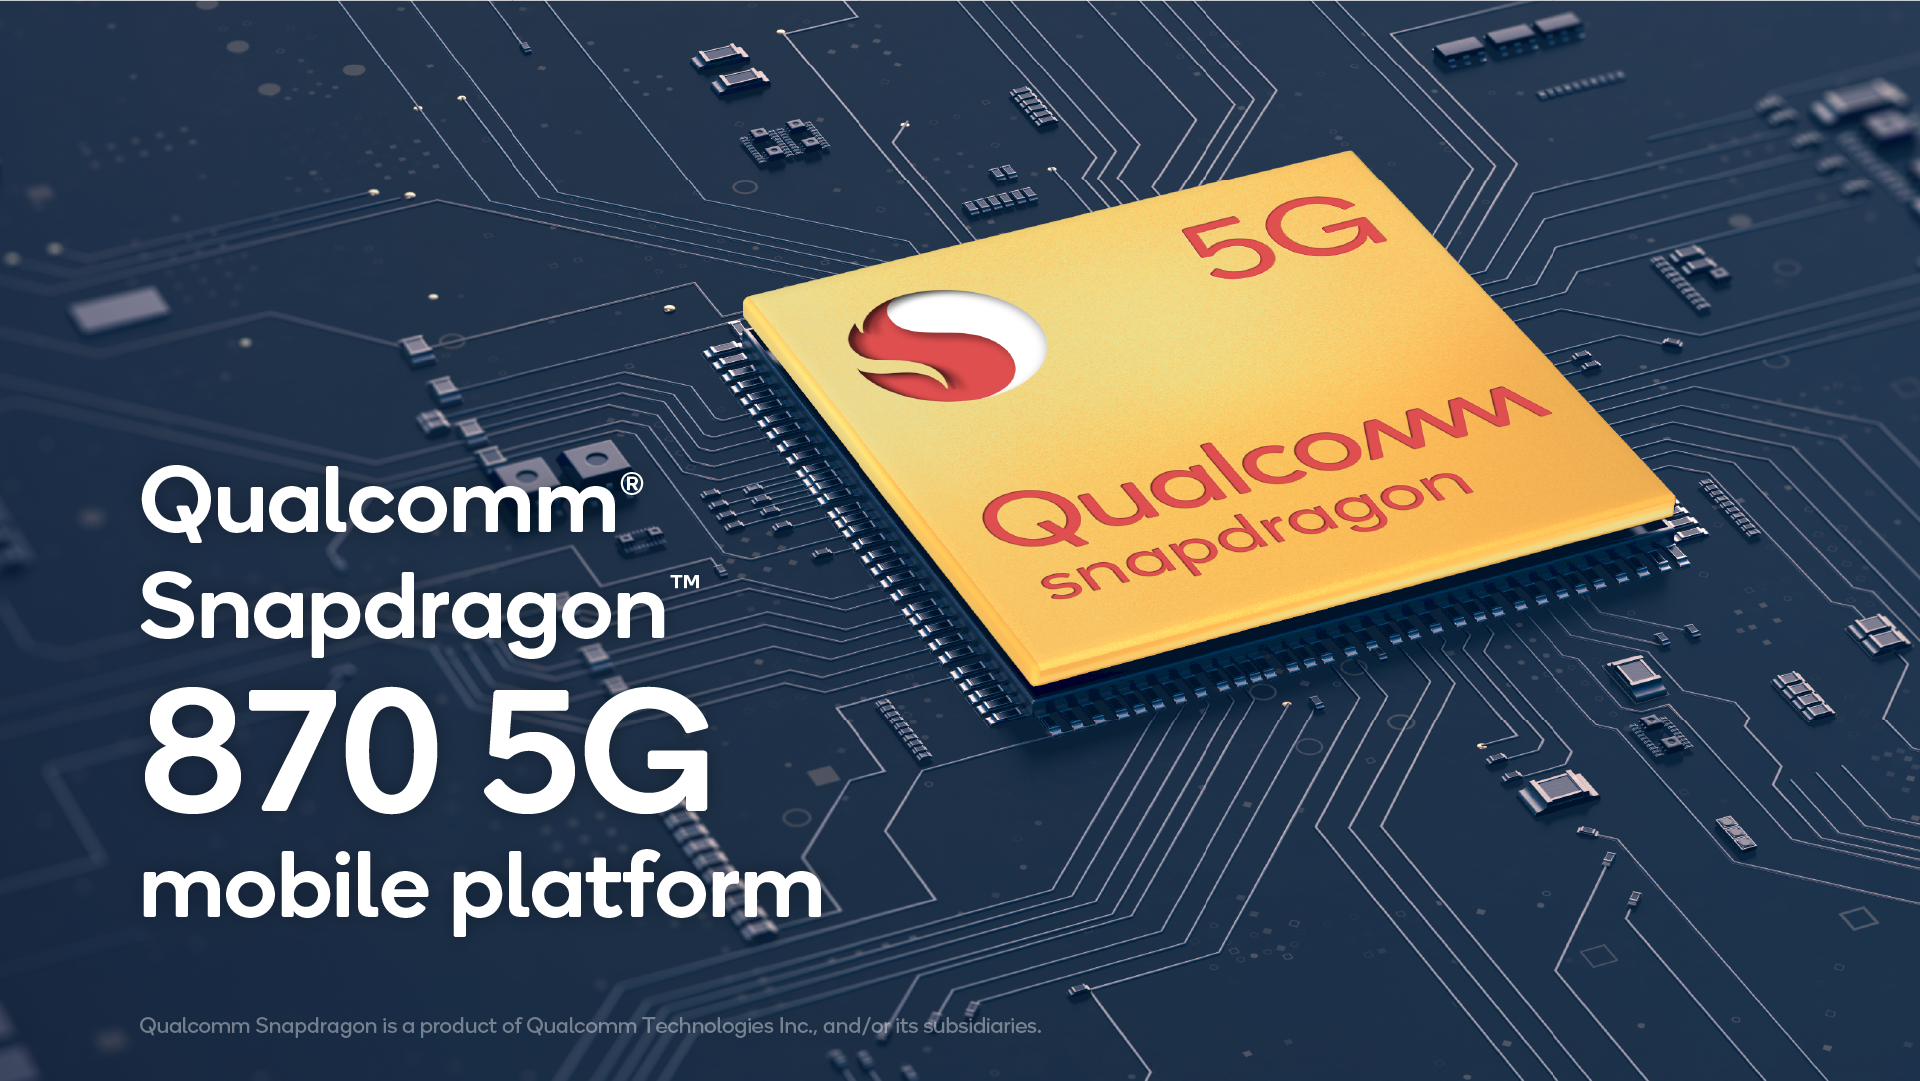 The Snapdragon 870 5G is an updated Snapdragon 865 for 2021